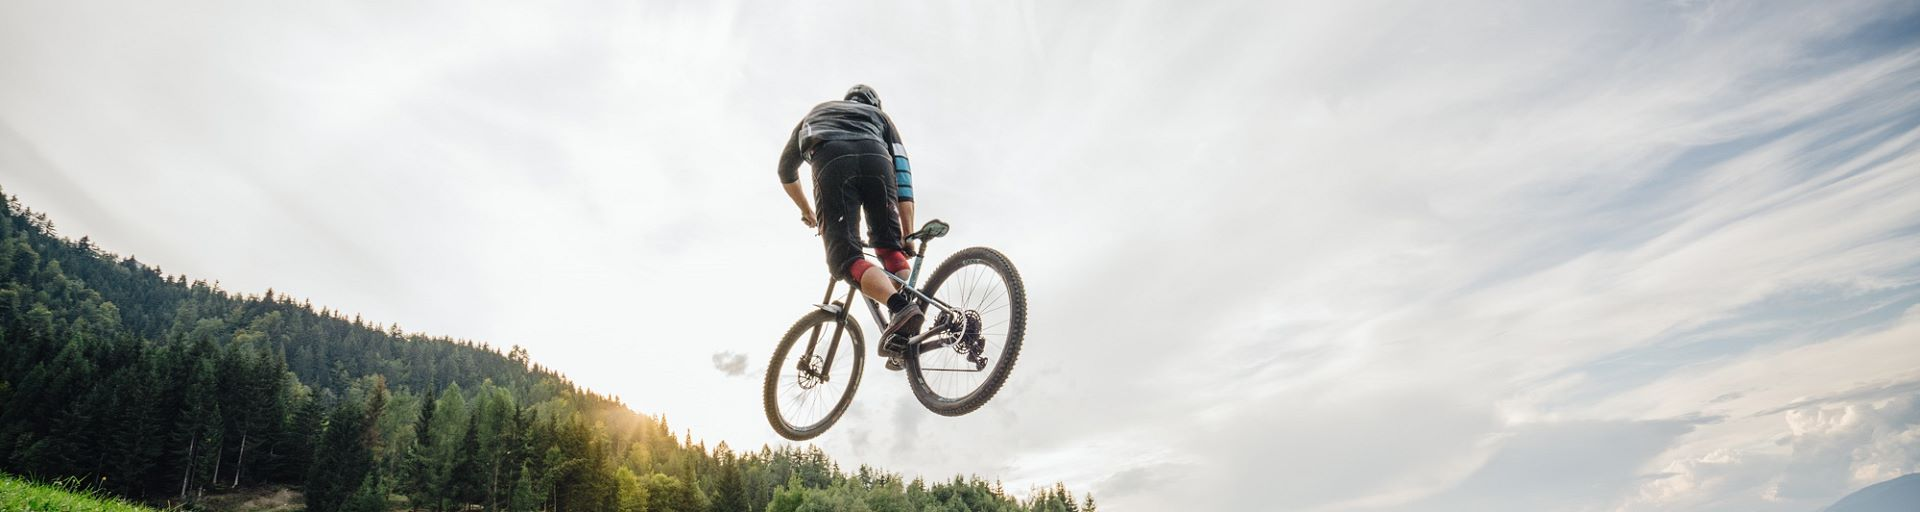 Villach Carinzia a tutta Mountain Bike